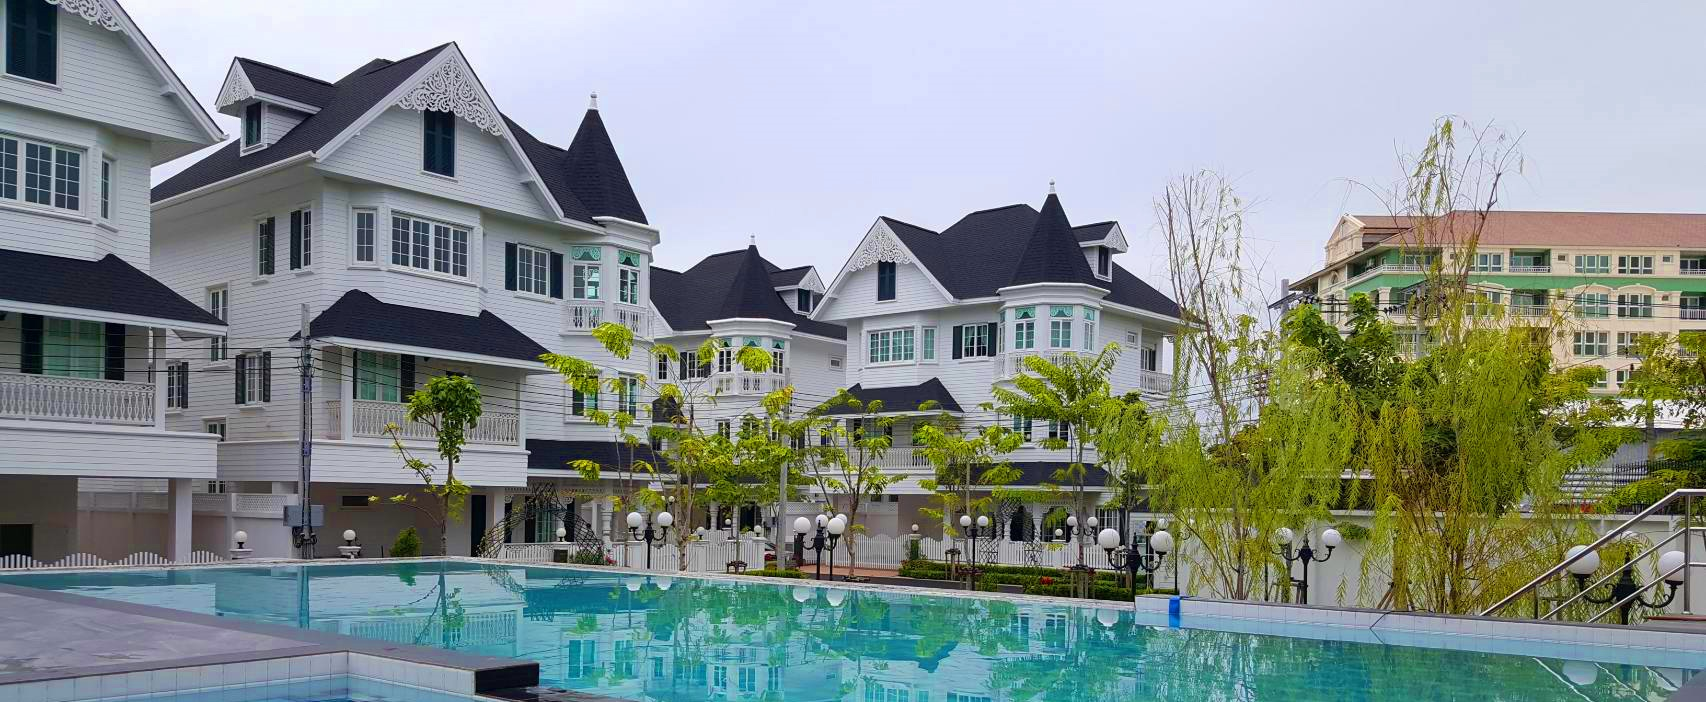 Neuly Built Townhouse Close to Bangkok Patana School